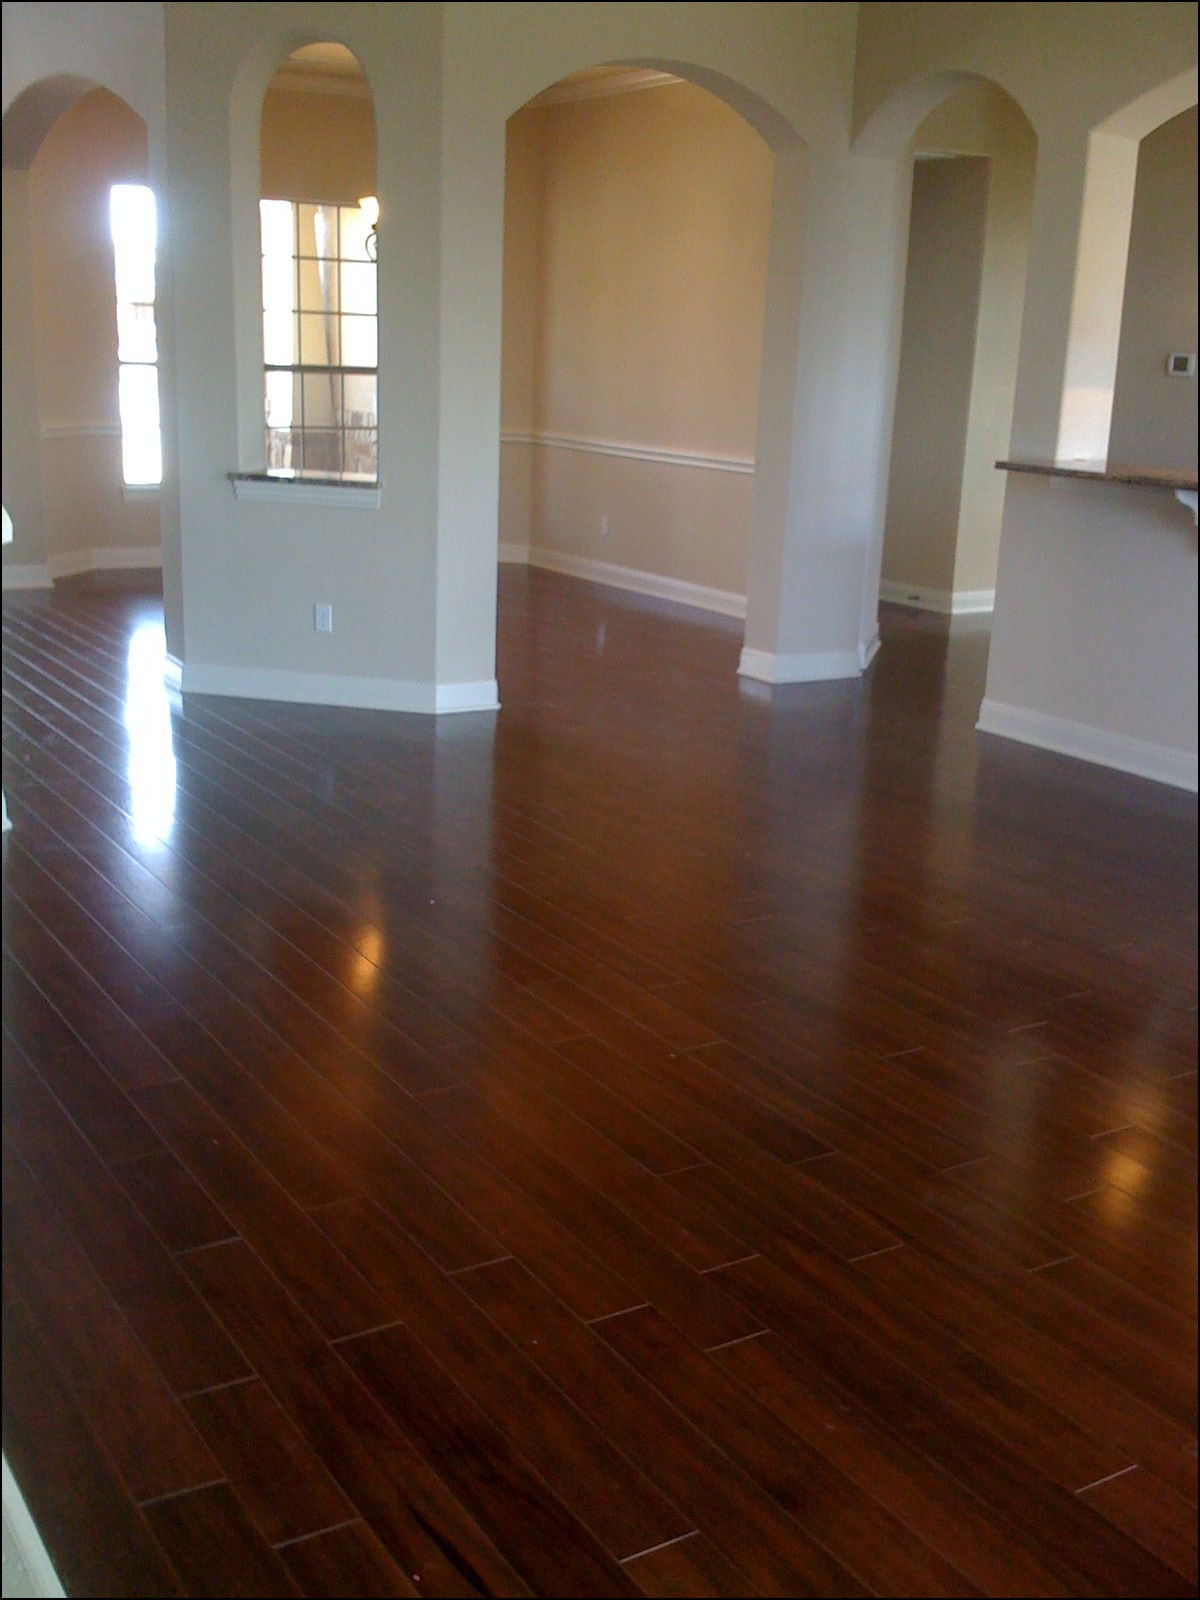 hardwood floor refinishing rhode island of hardwood flooring suppliers france flooring ideas pertaining to hardwood flooring pictures in homes galerie dark wood floors but all i can think of is